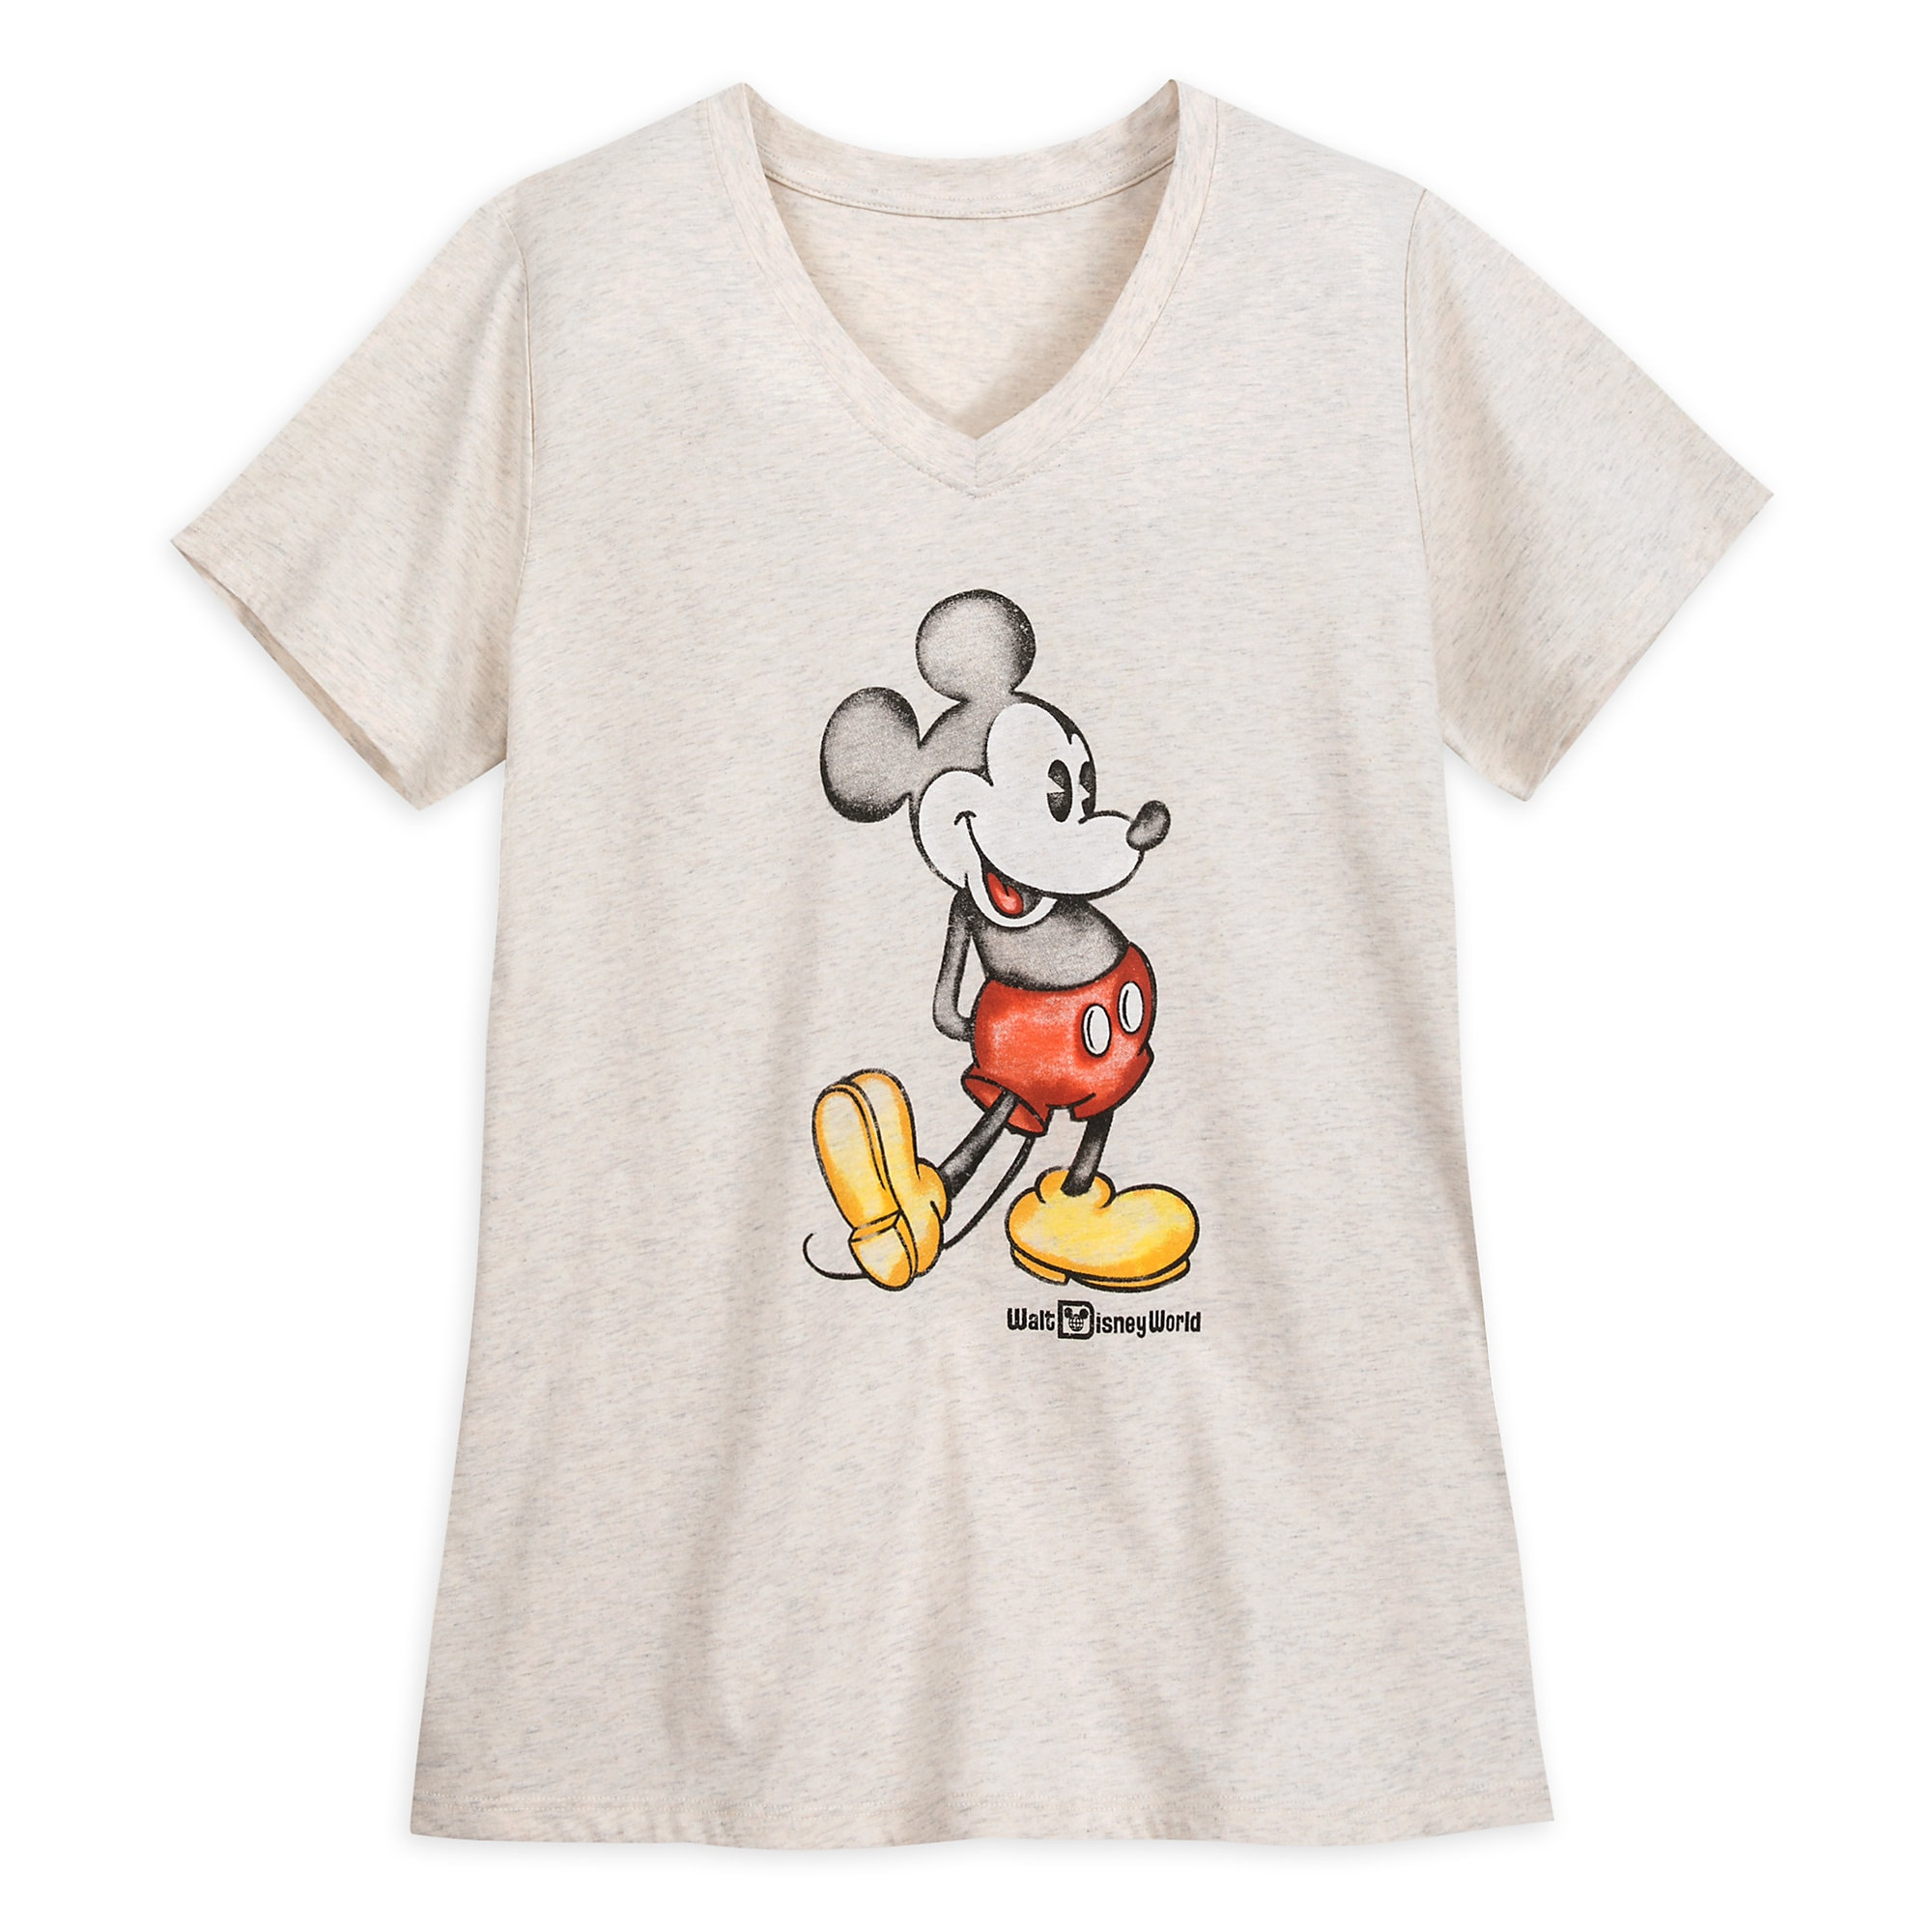 d47e46719 Mickey Mouse Heathered V-Neck T-Shirt for Women – Walt Disney World –  Oatmeal has hit the shelves for purchase